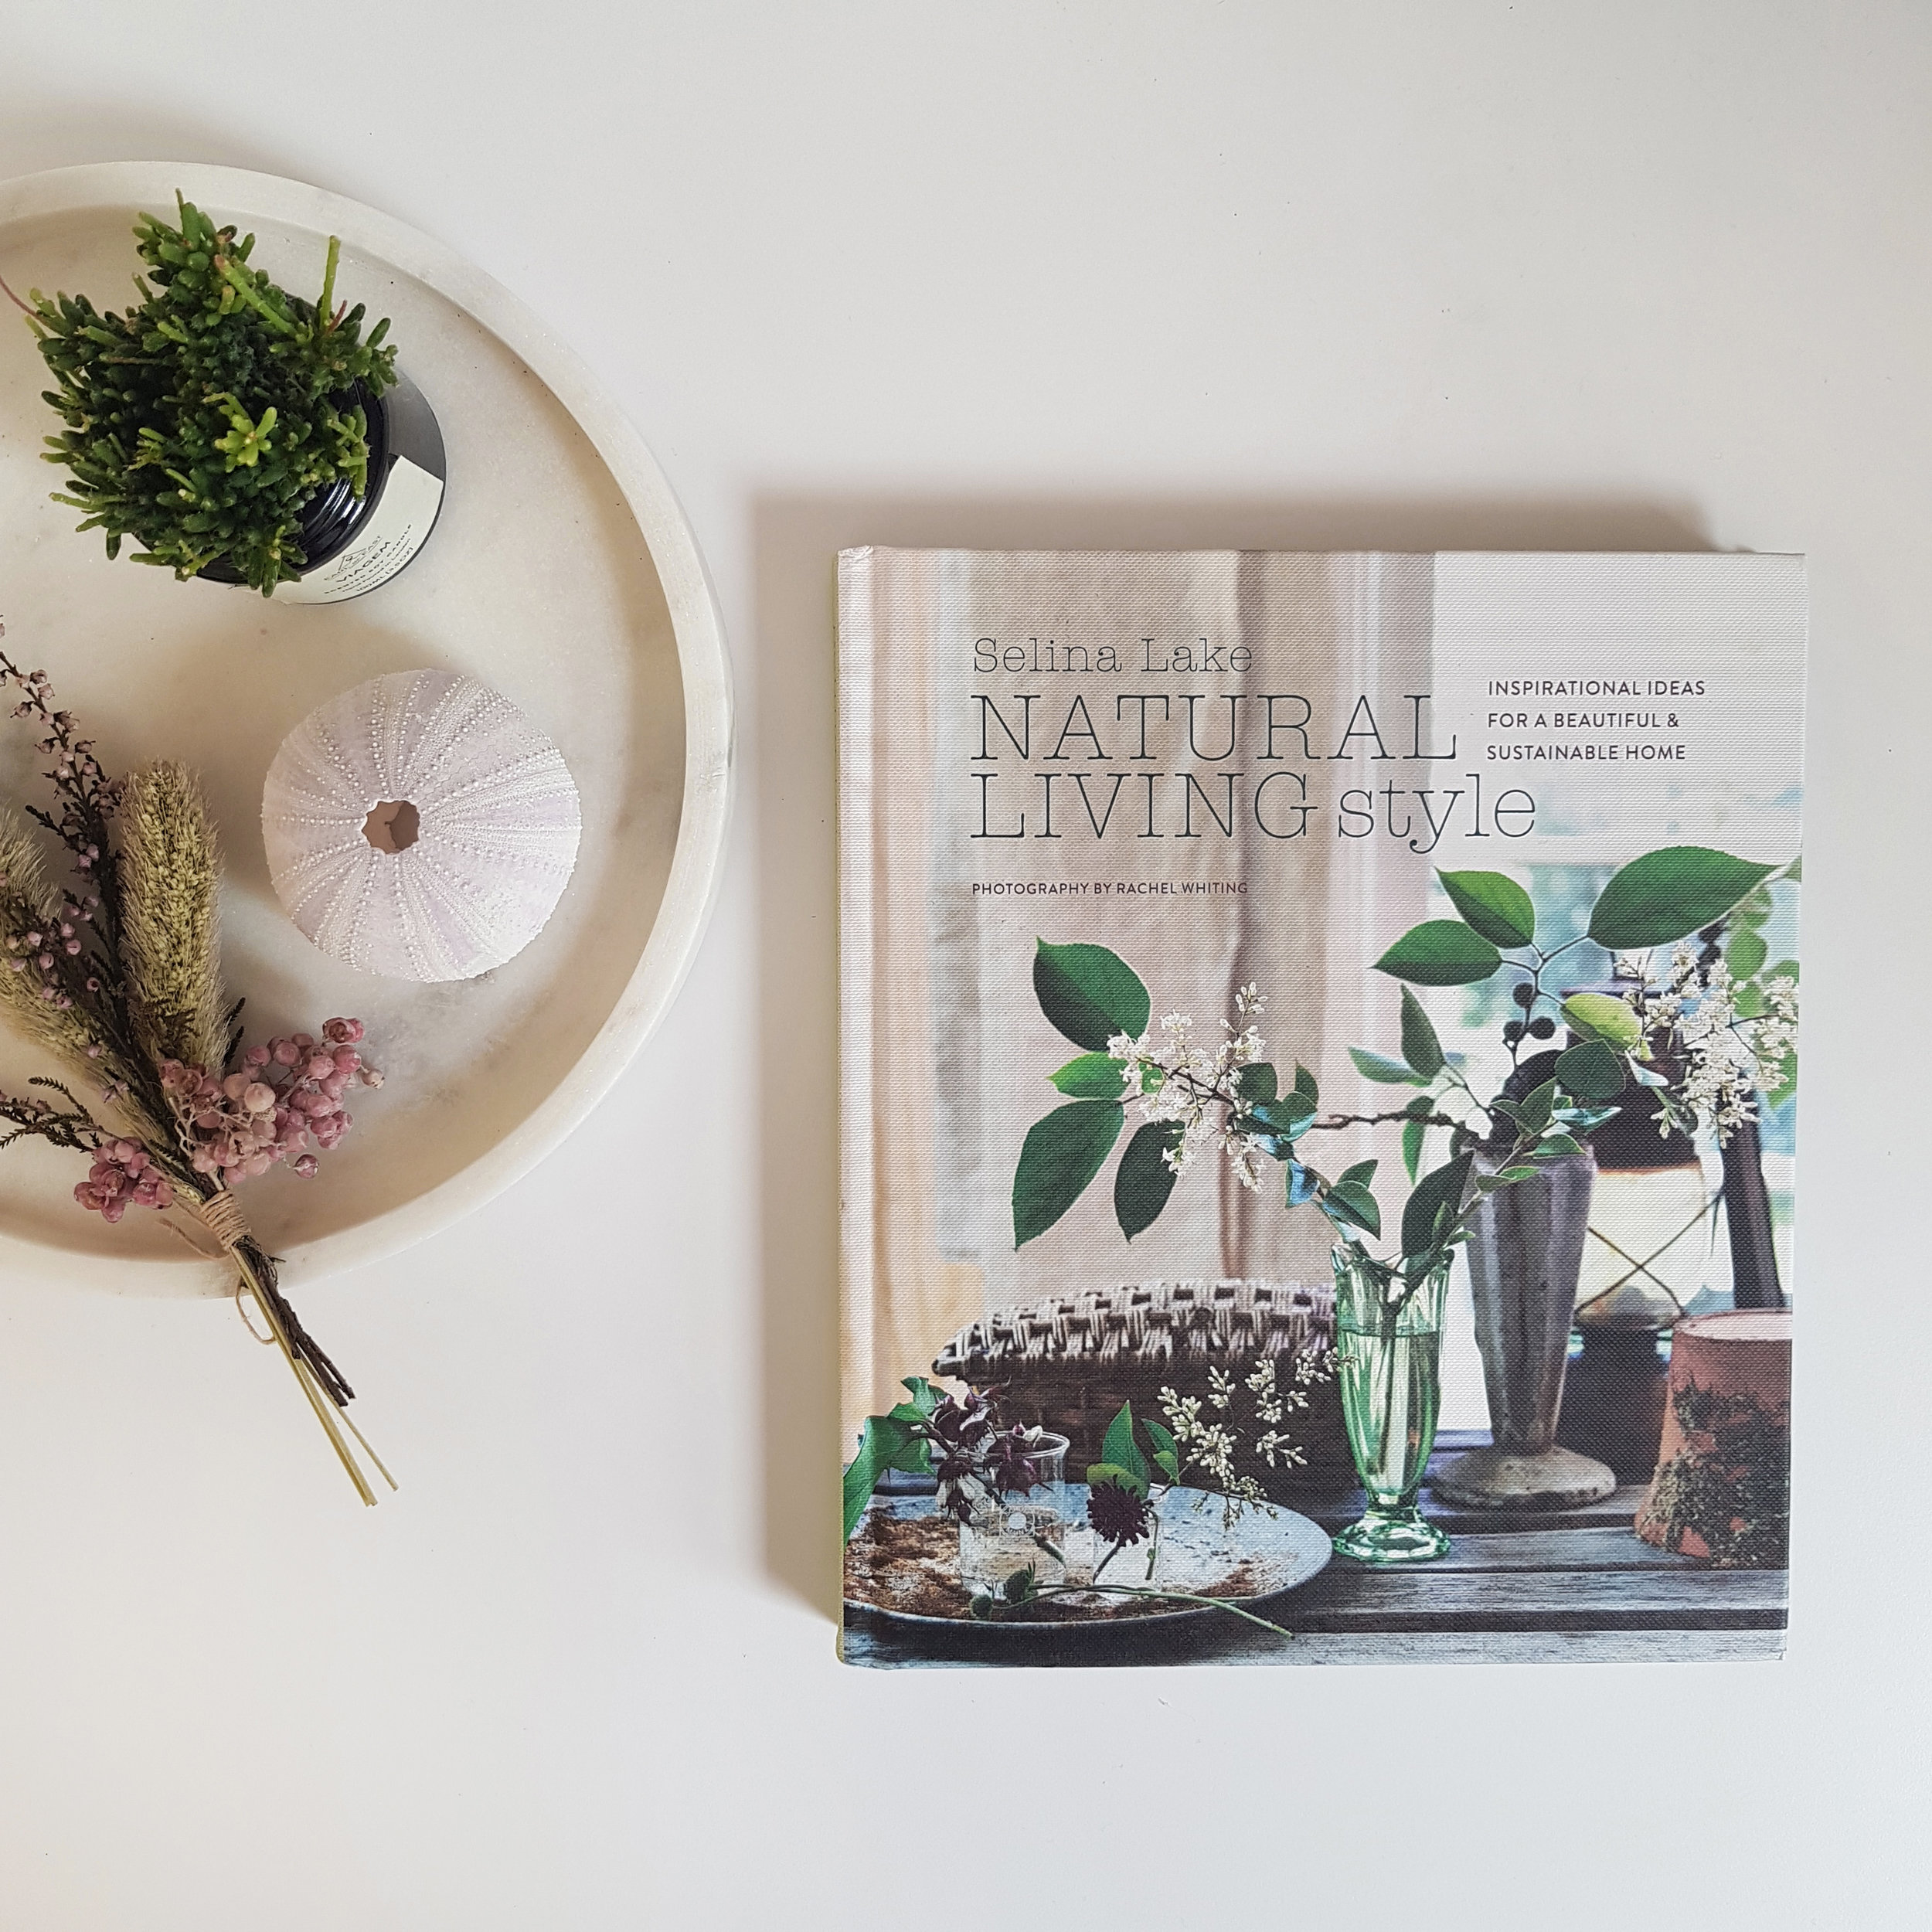 Selina Lake Natural Living Style book review